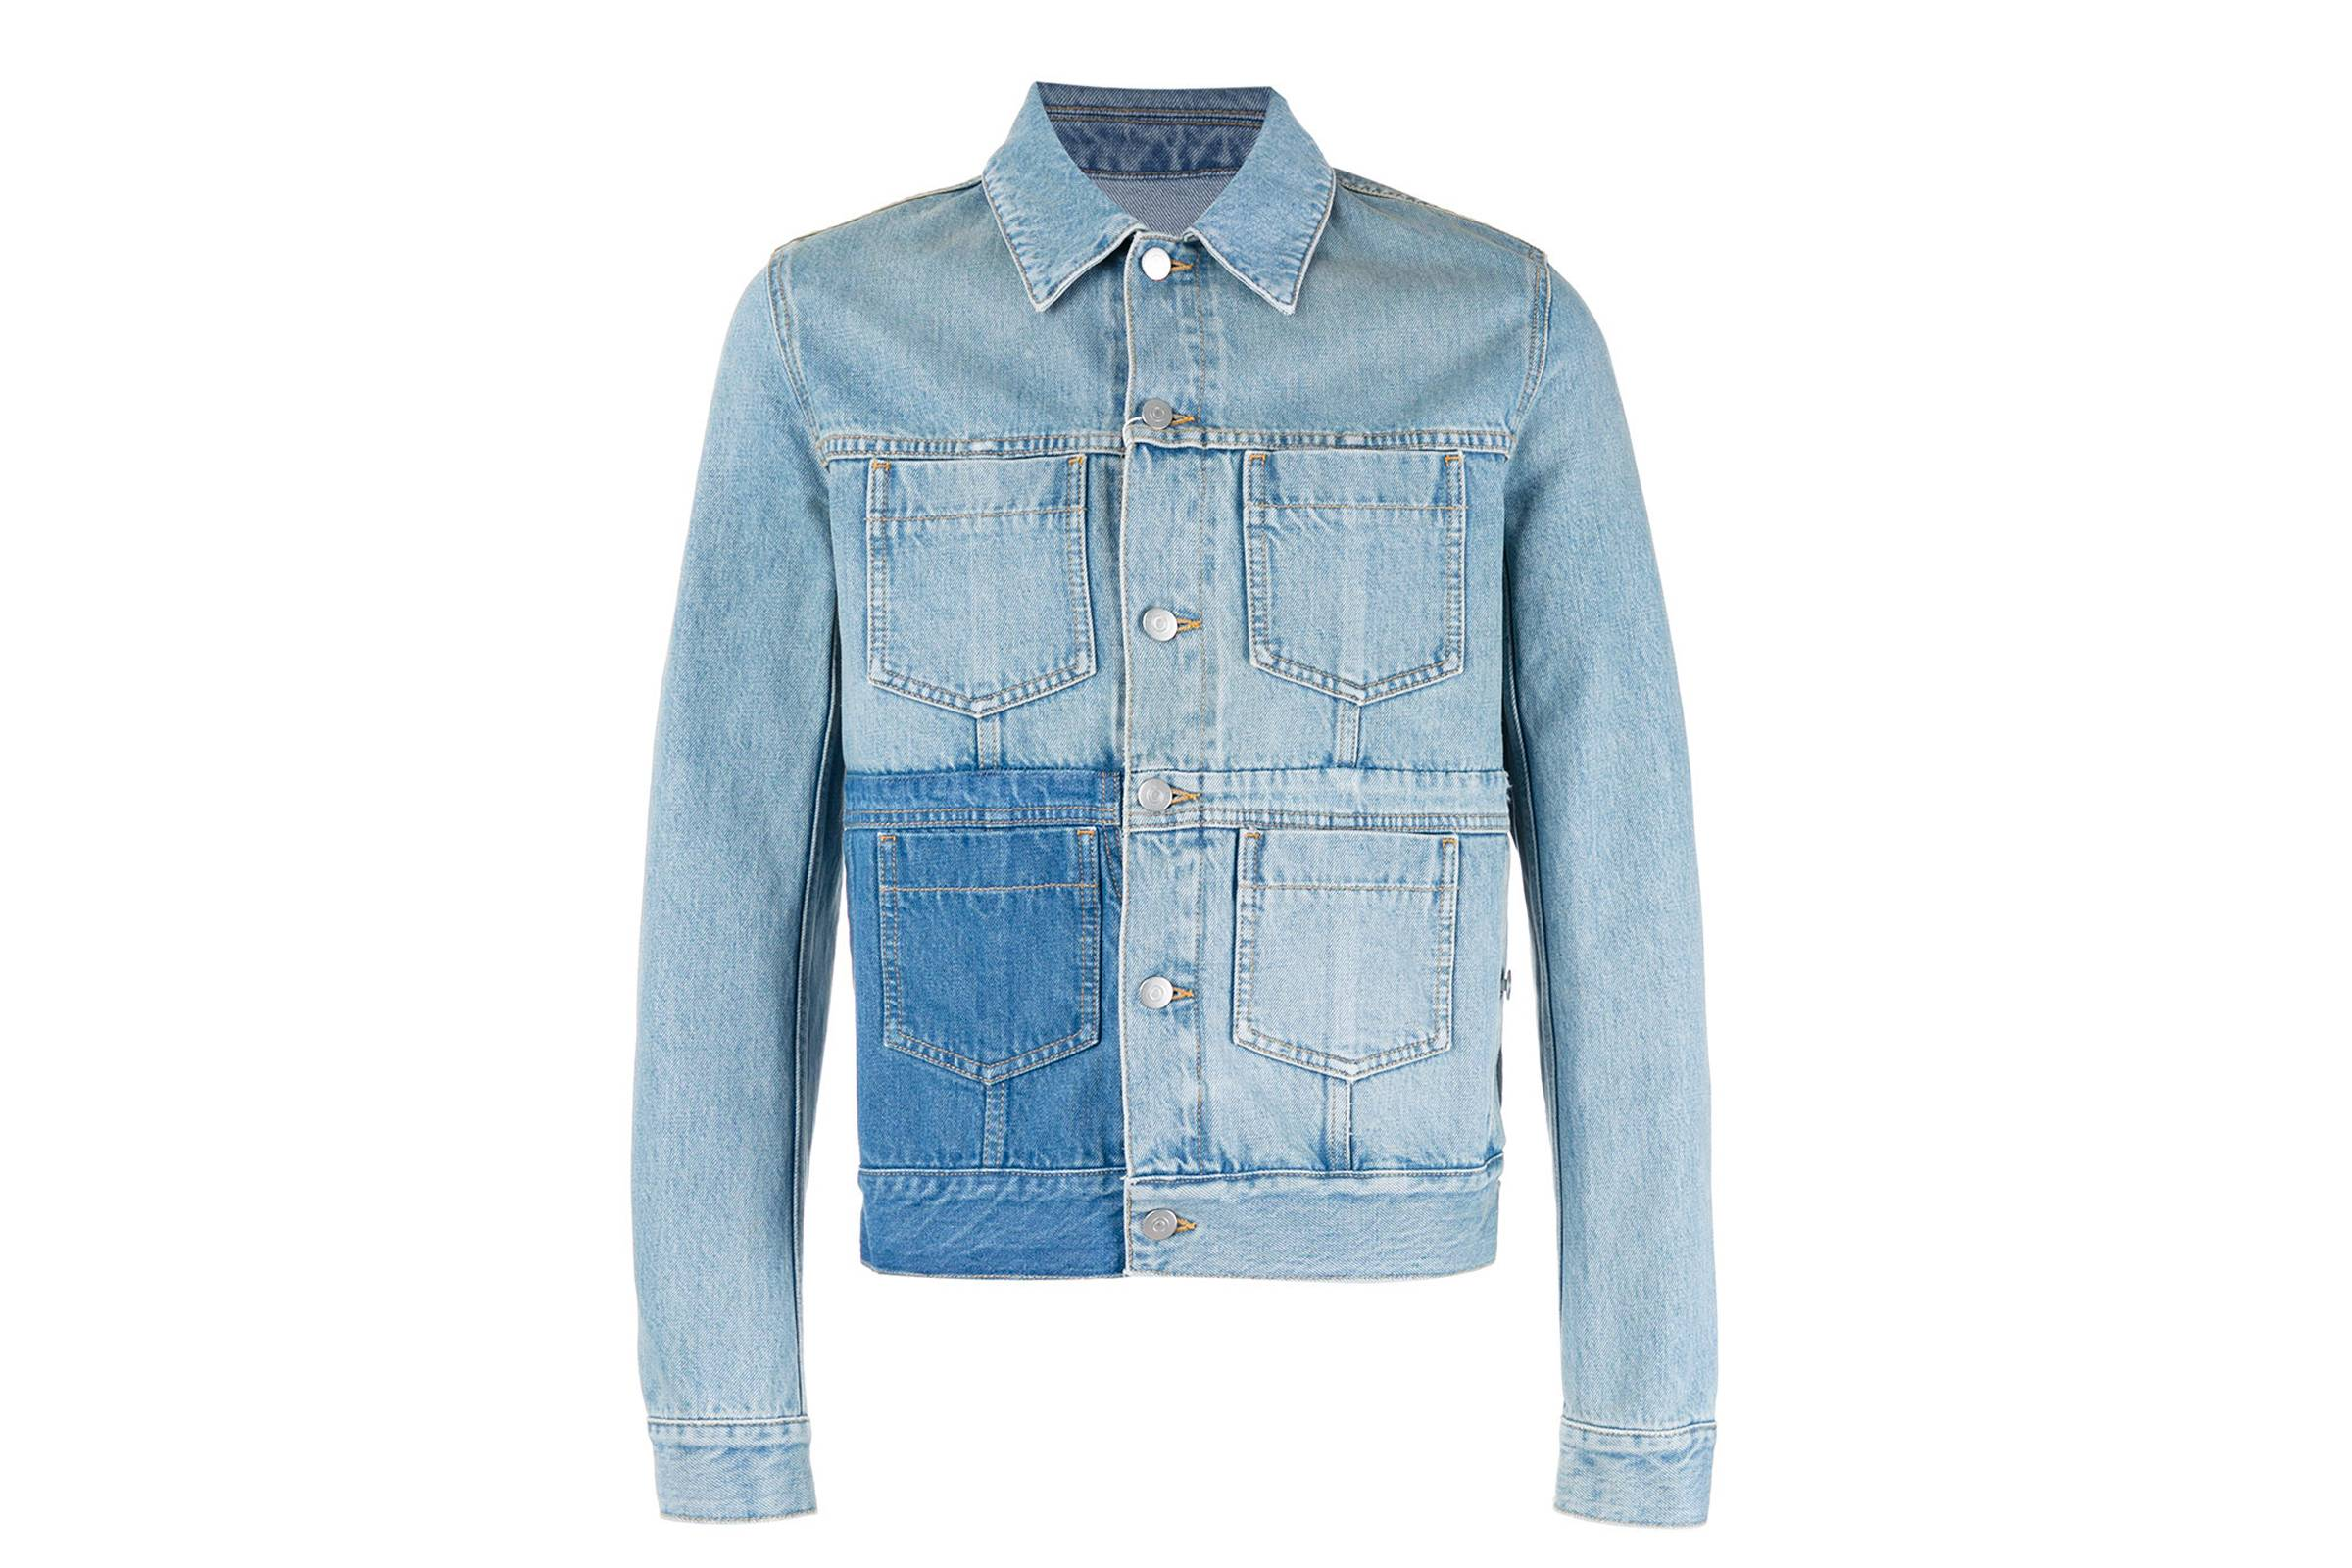 Maison Margiela Patchwork Denim Jacket